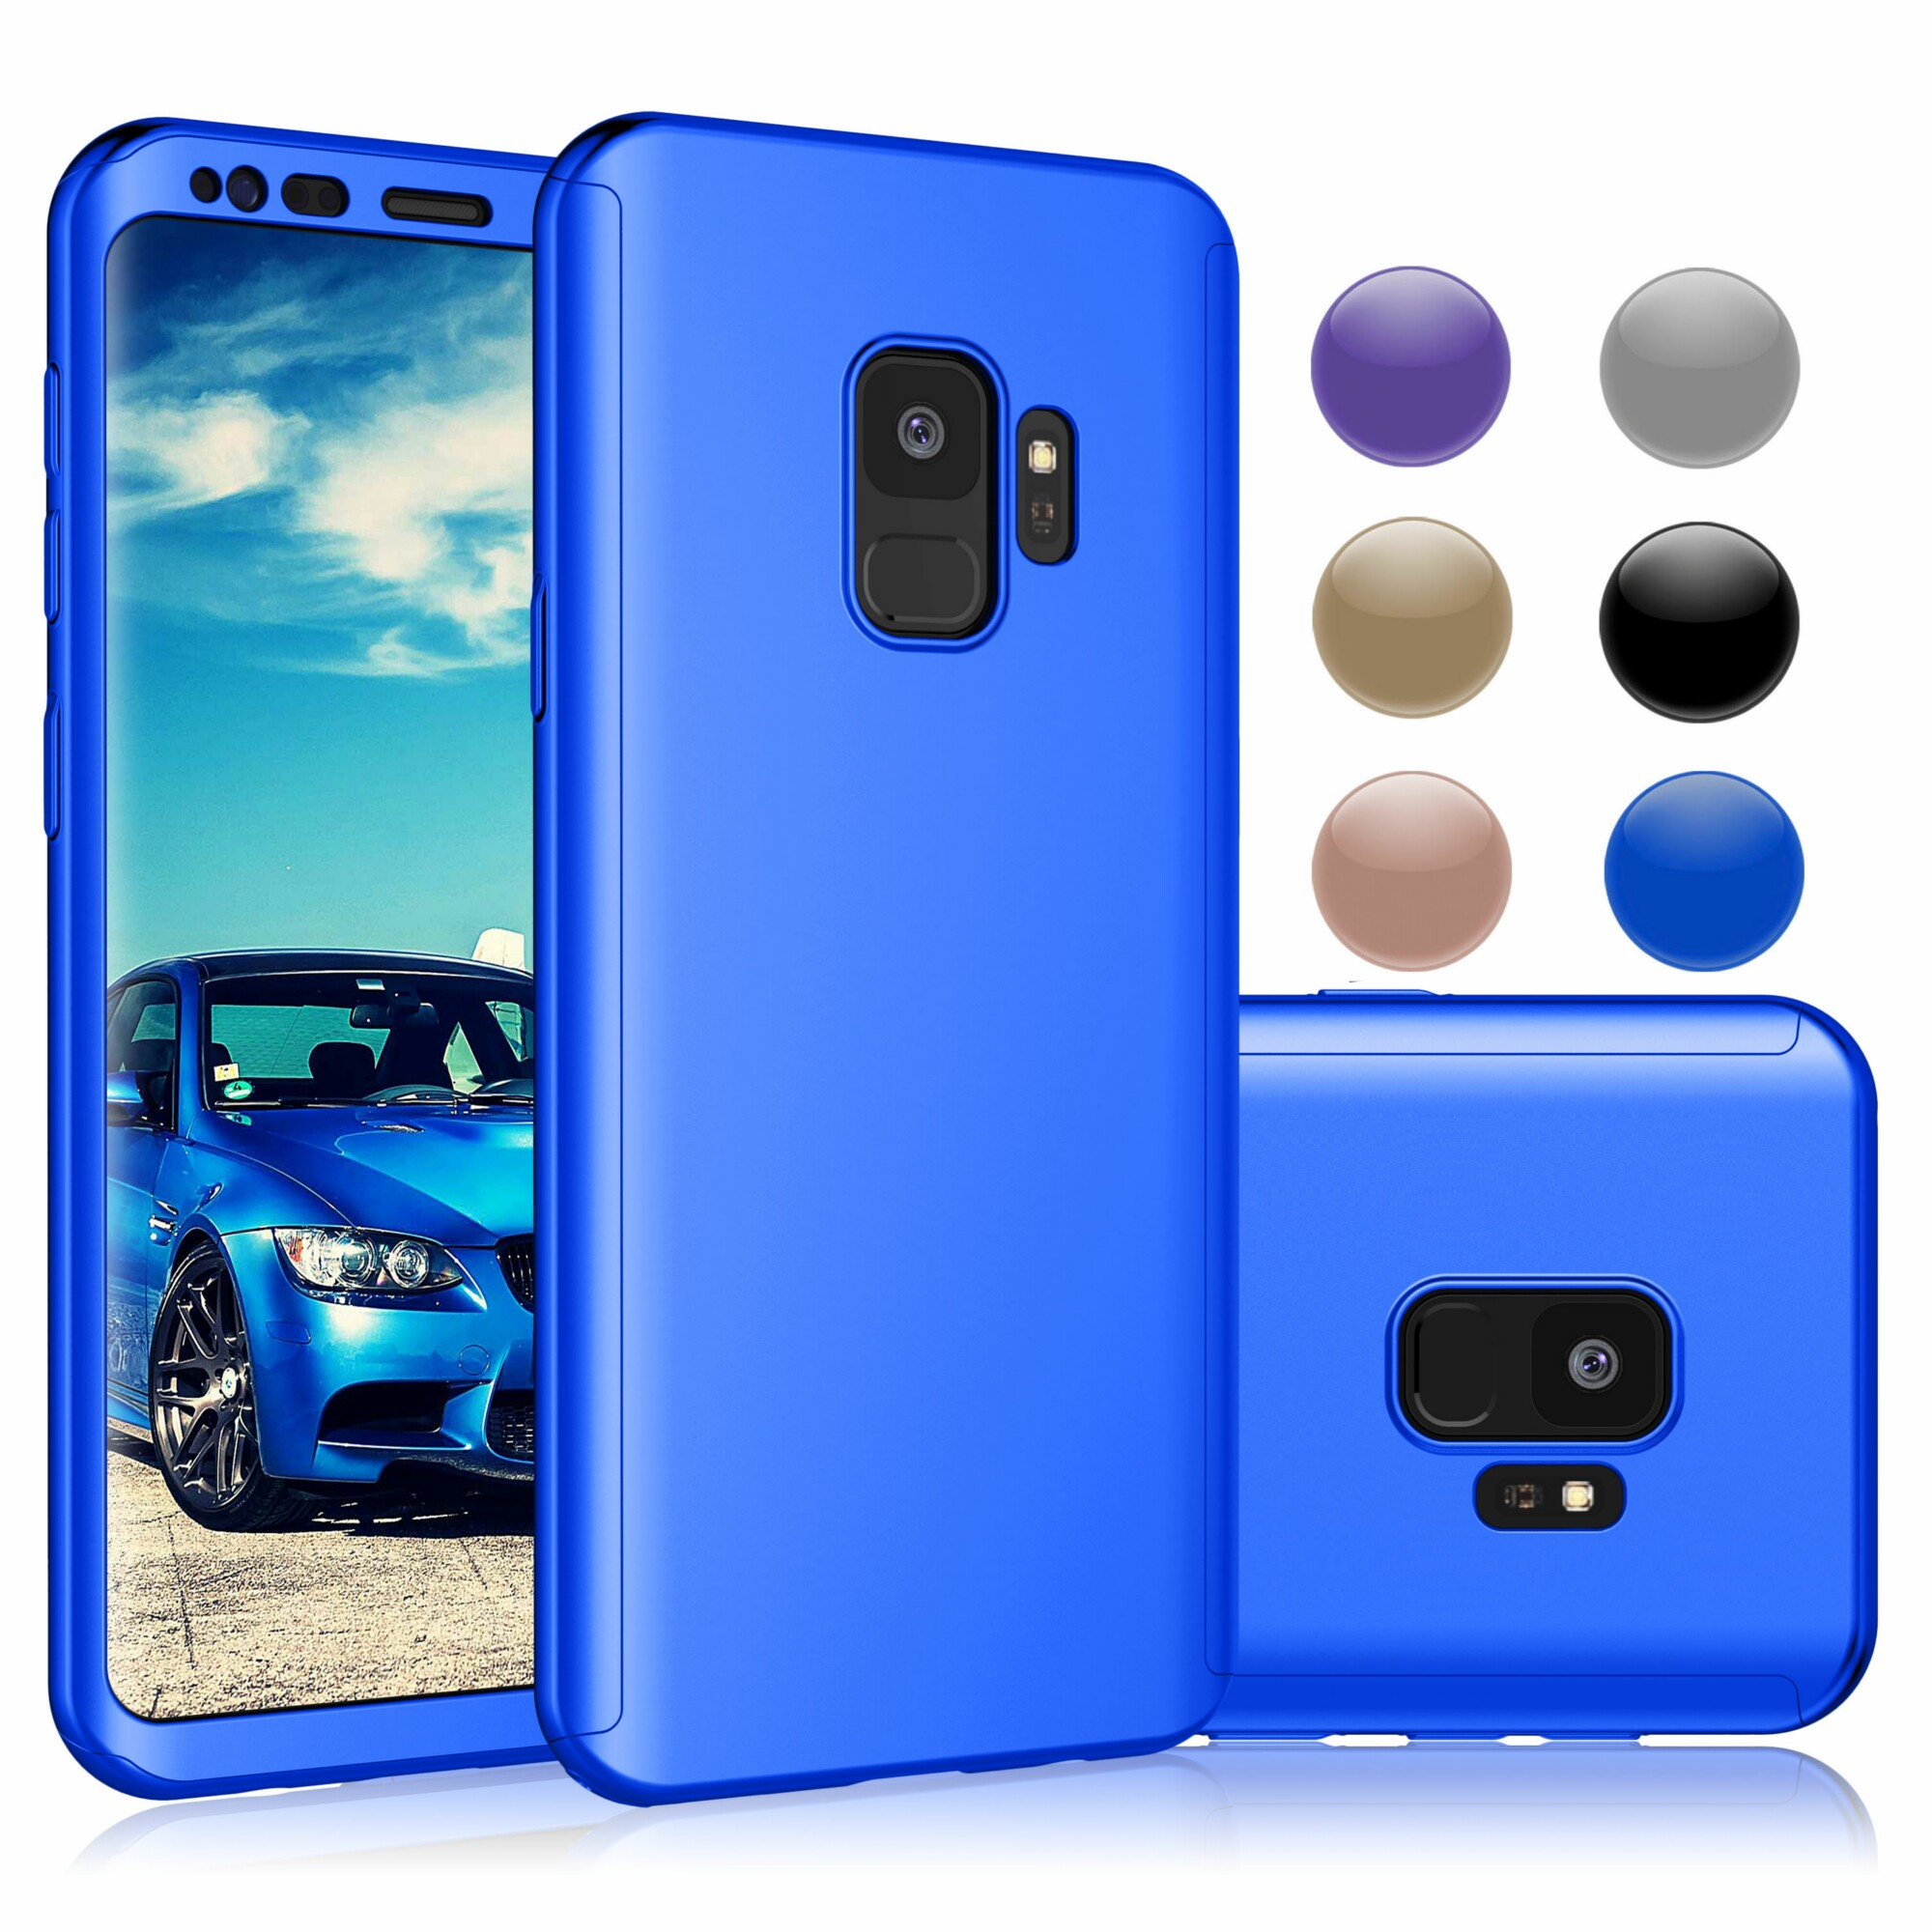 Njjex Case For Samsung Galaxy S9 Plus / S9, Ultra Thin Full Body Coverage Protection Scratch Proof Hard Hybrid Plastic Case Cover Shell